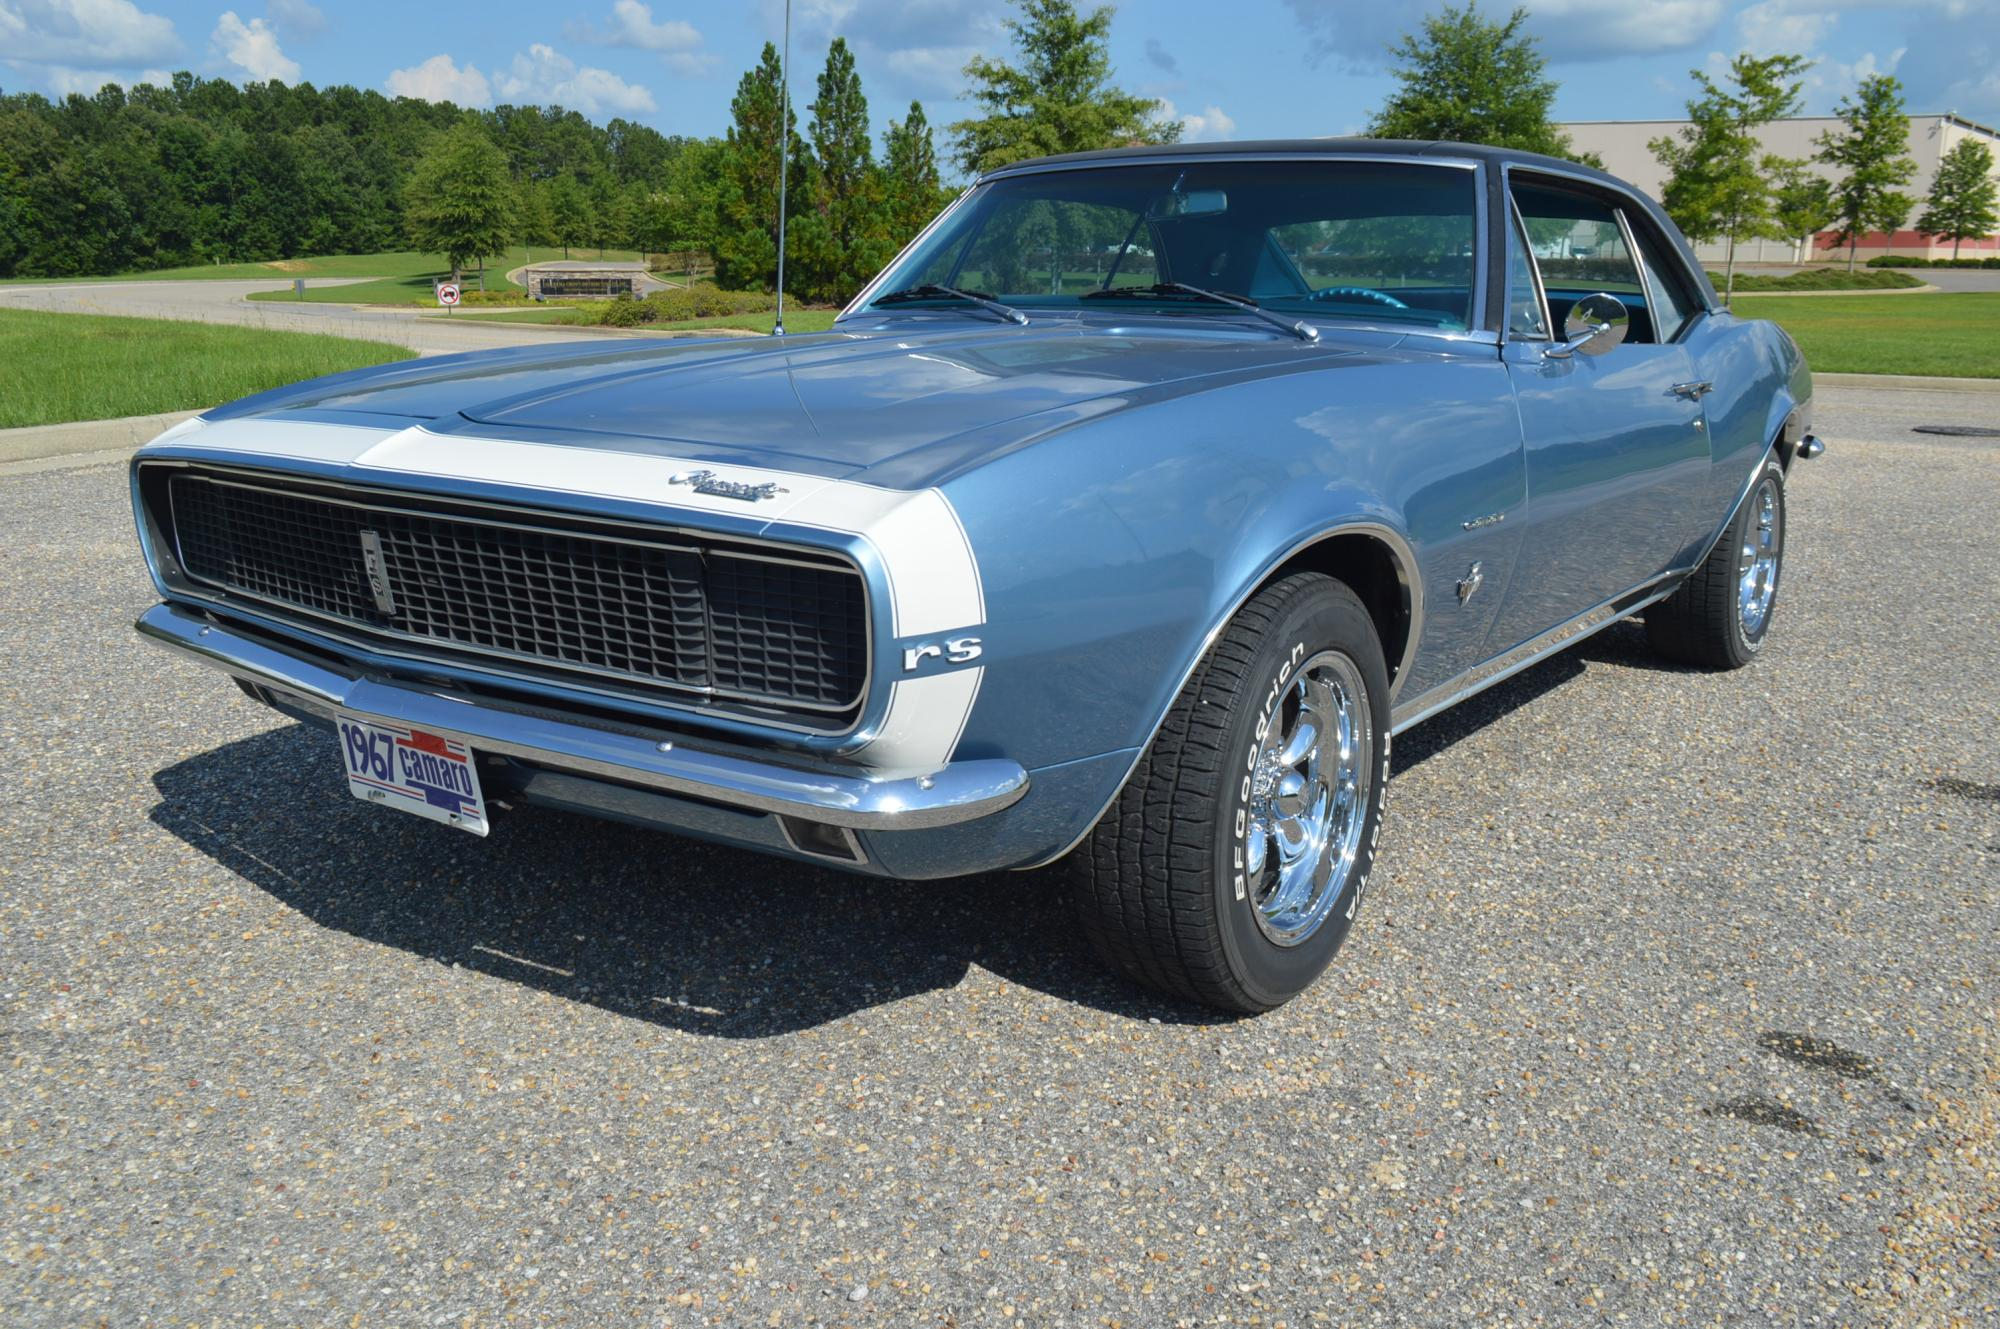 1967_Rs_blue_Camaro_007.JPG